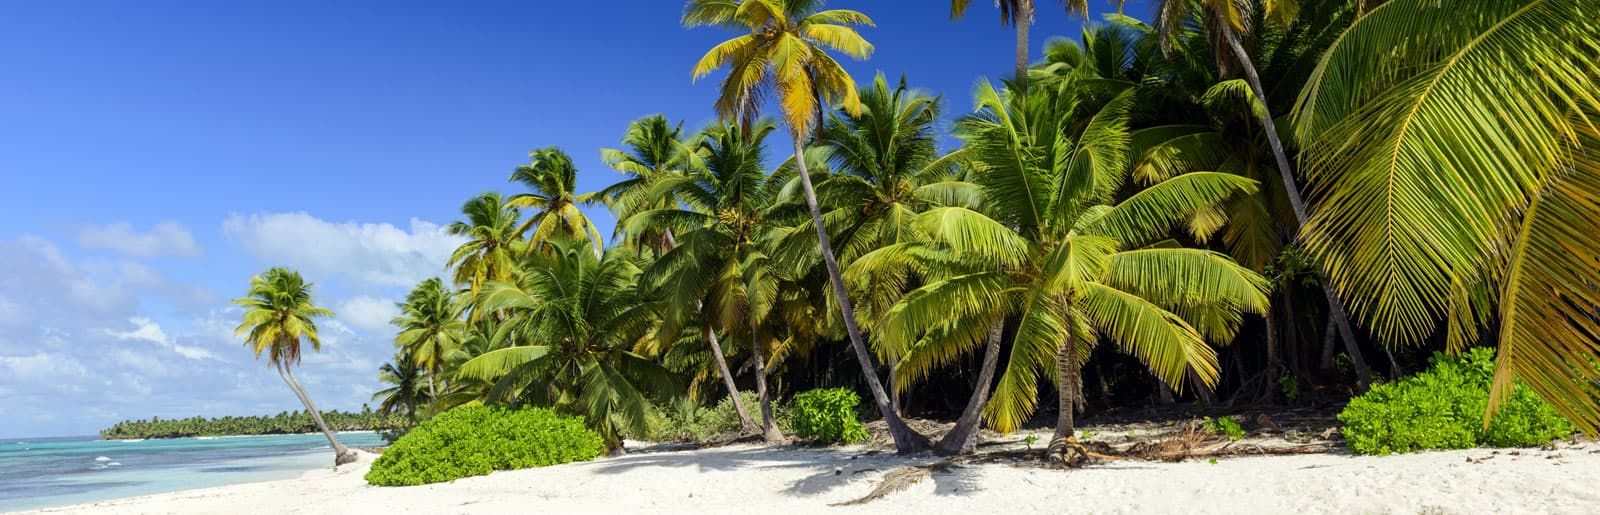 Holidays in Punta Cana